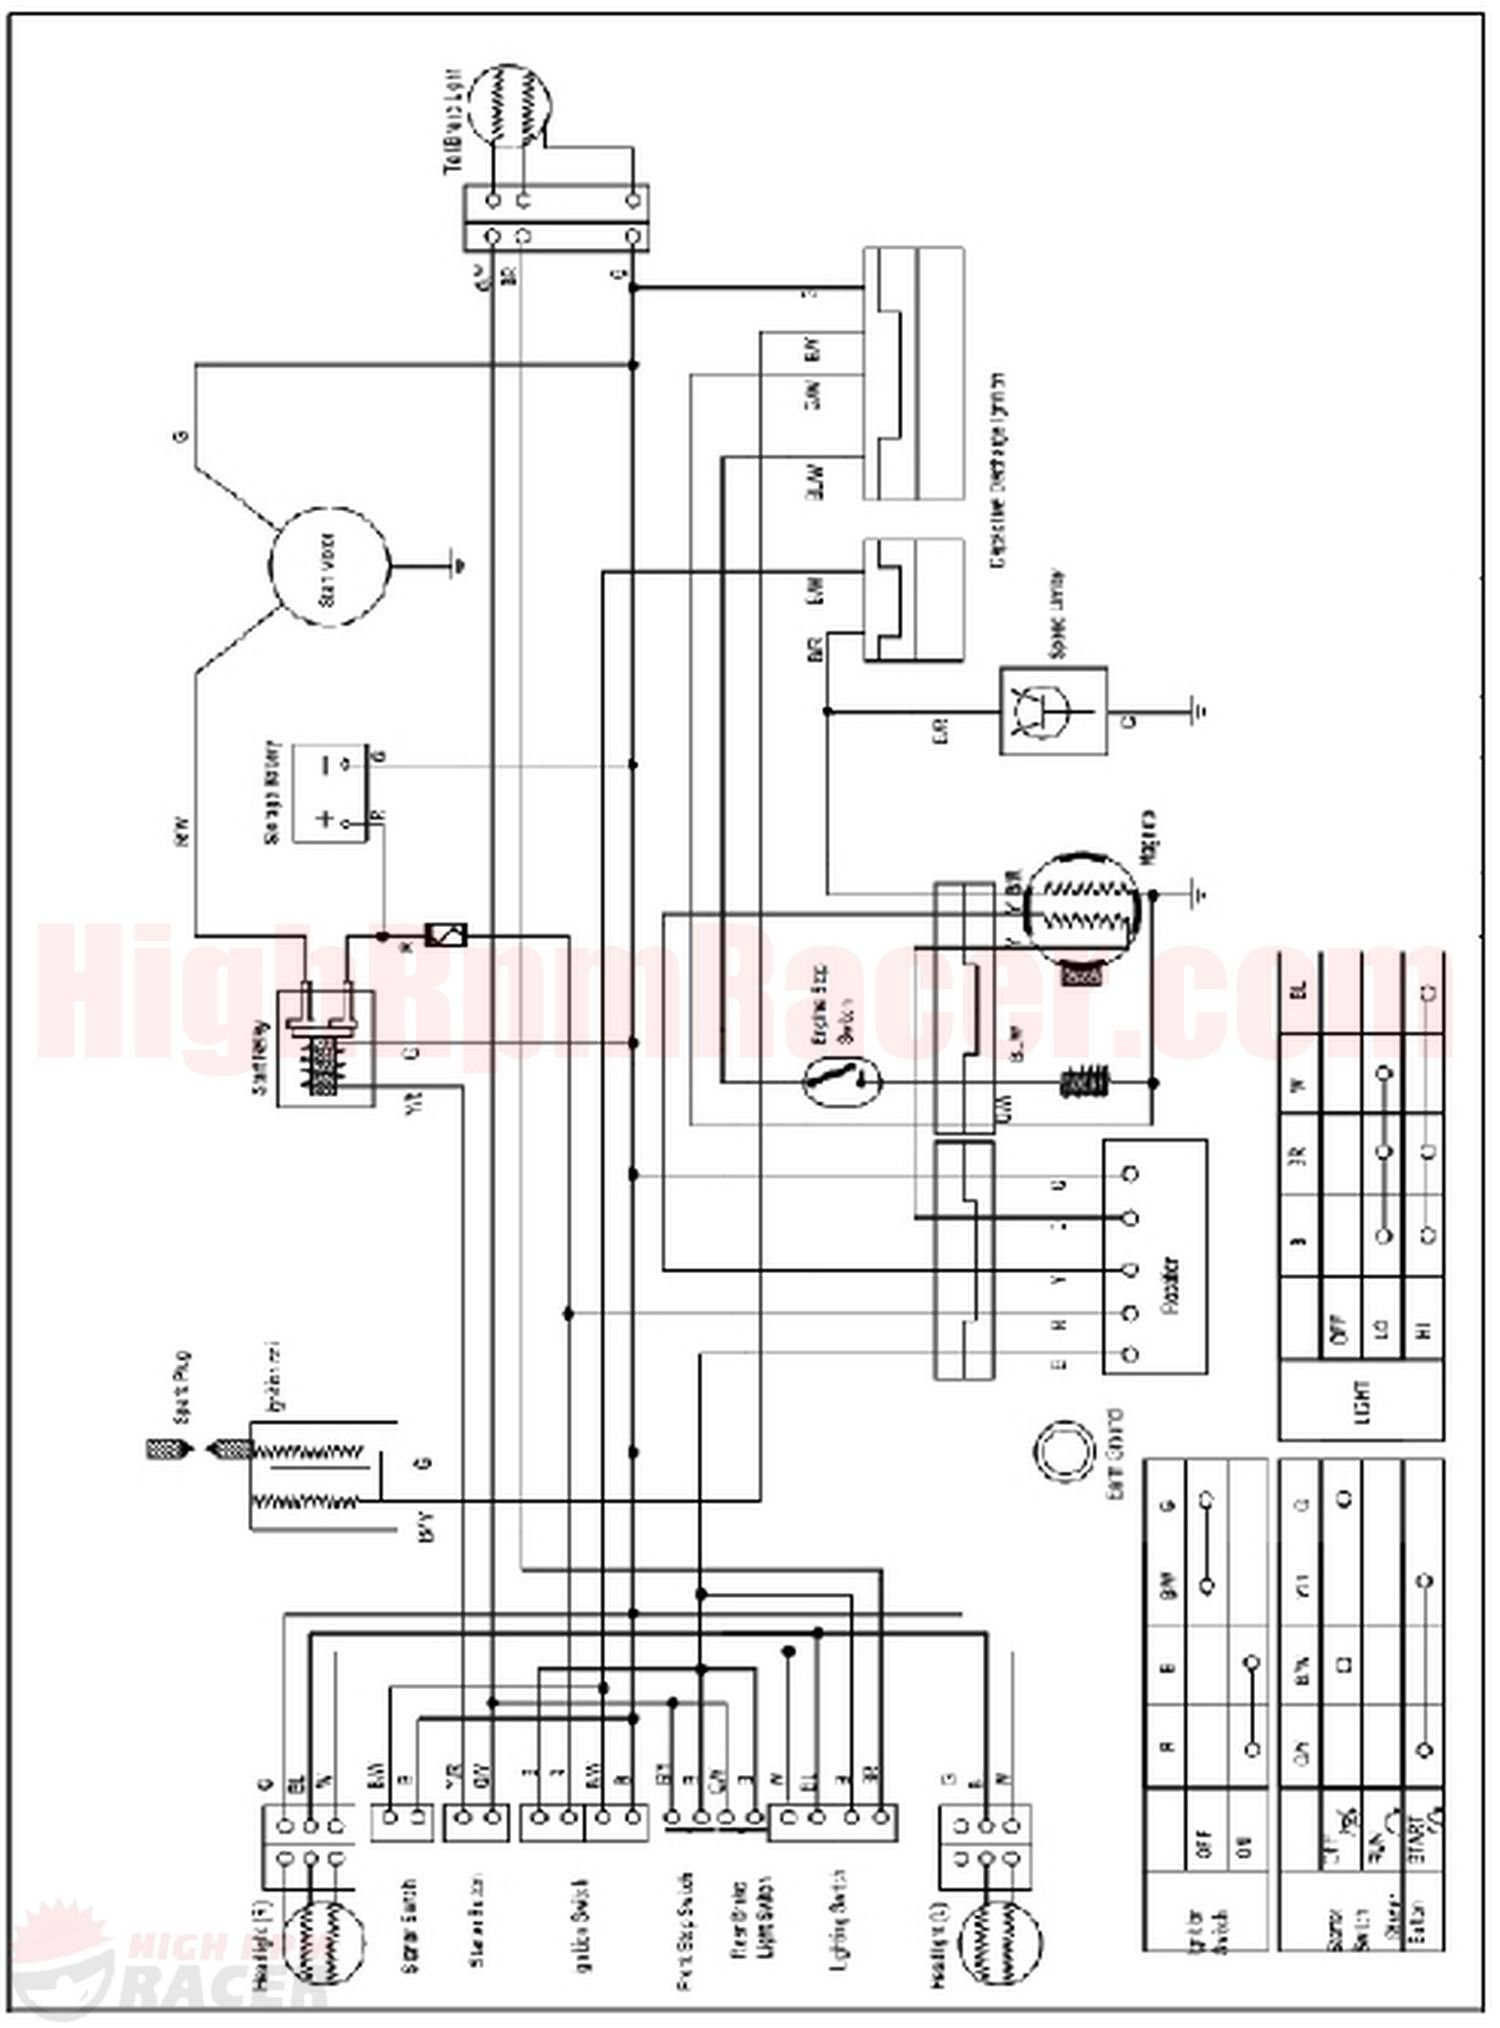 sunl250_wd sunl atv 250 wiring diagram $0 00 Terminator Time Loop Diagram at sewacar.co